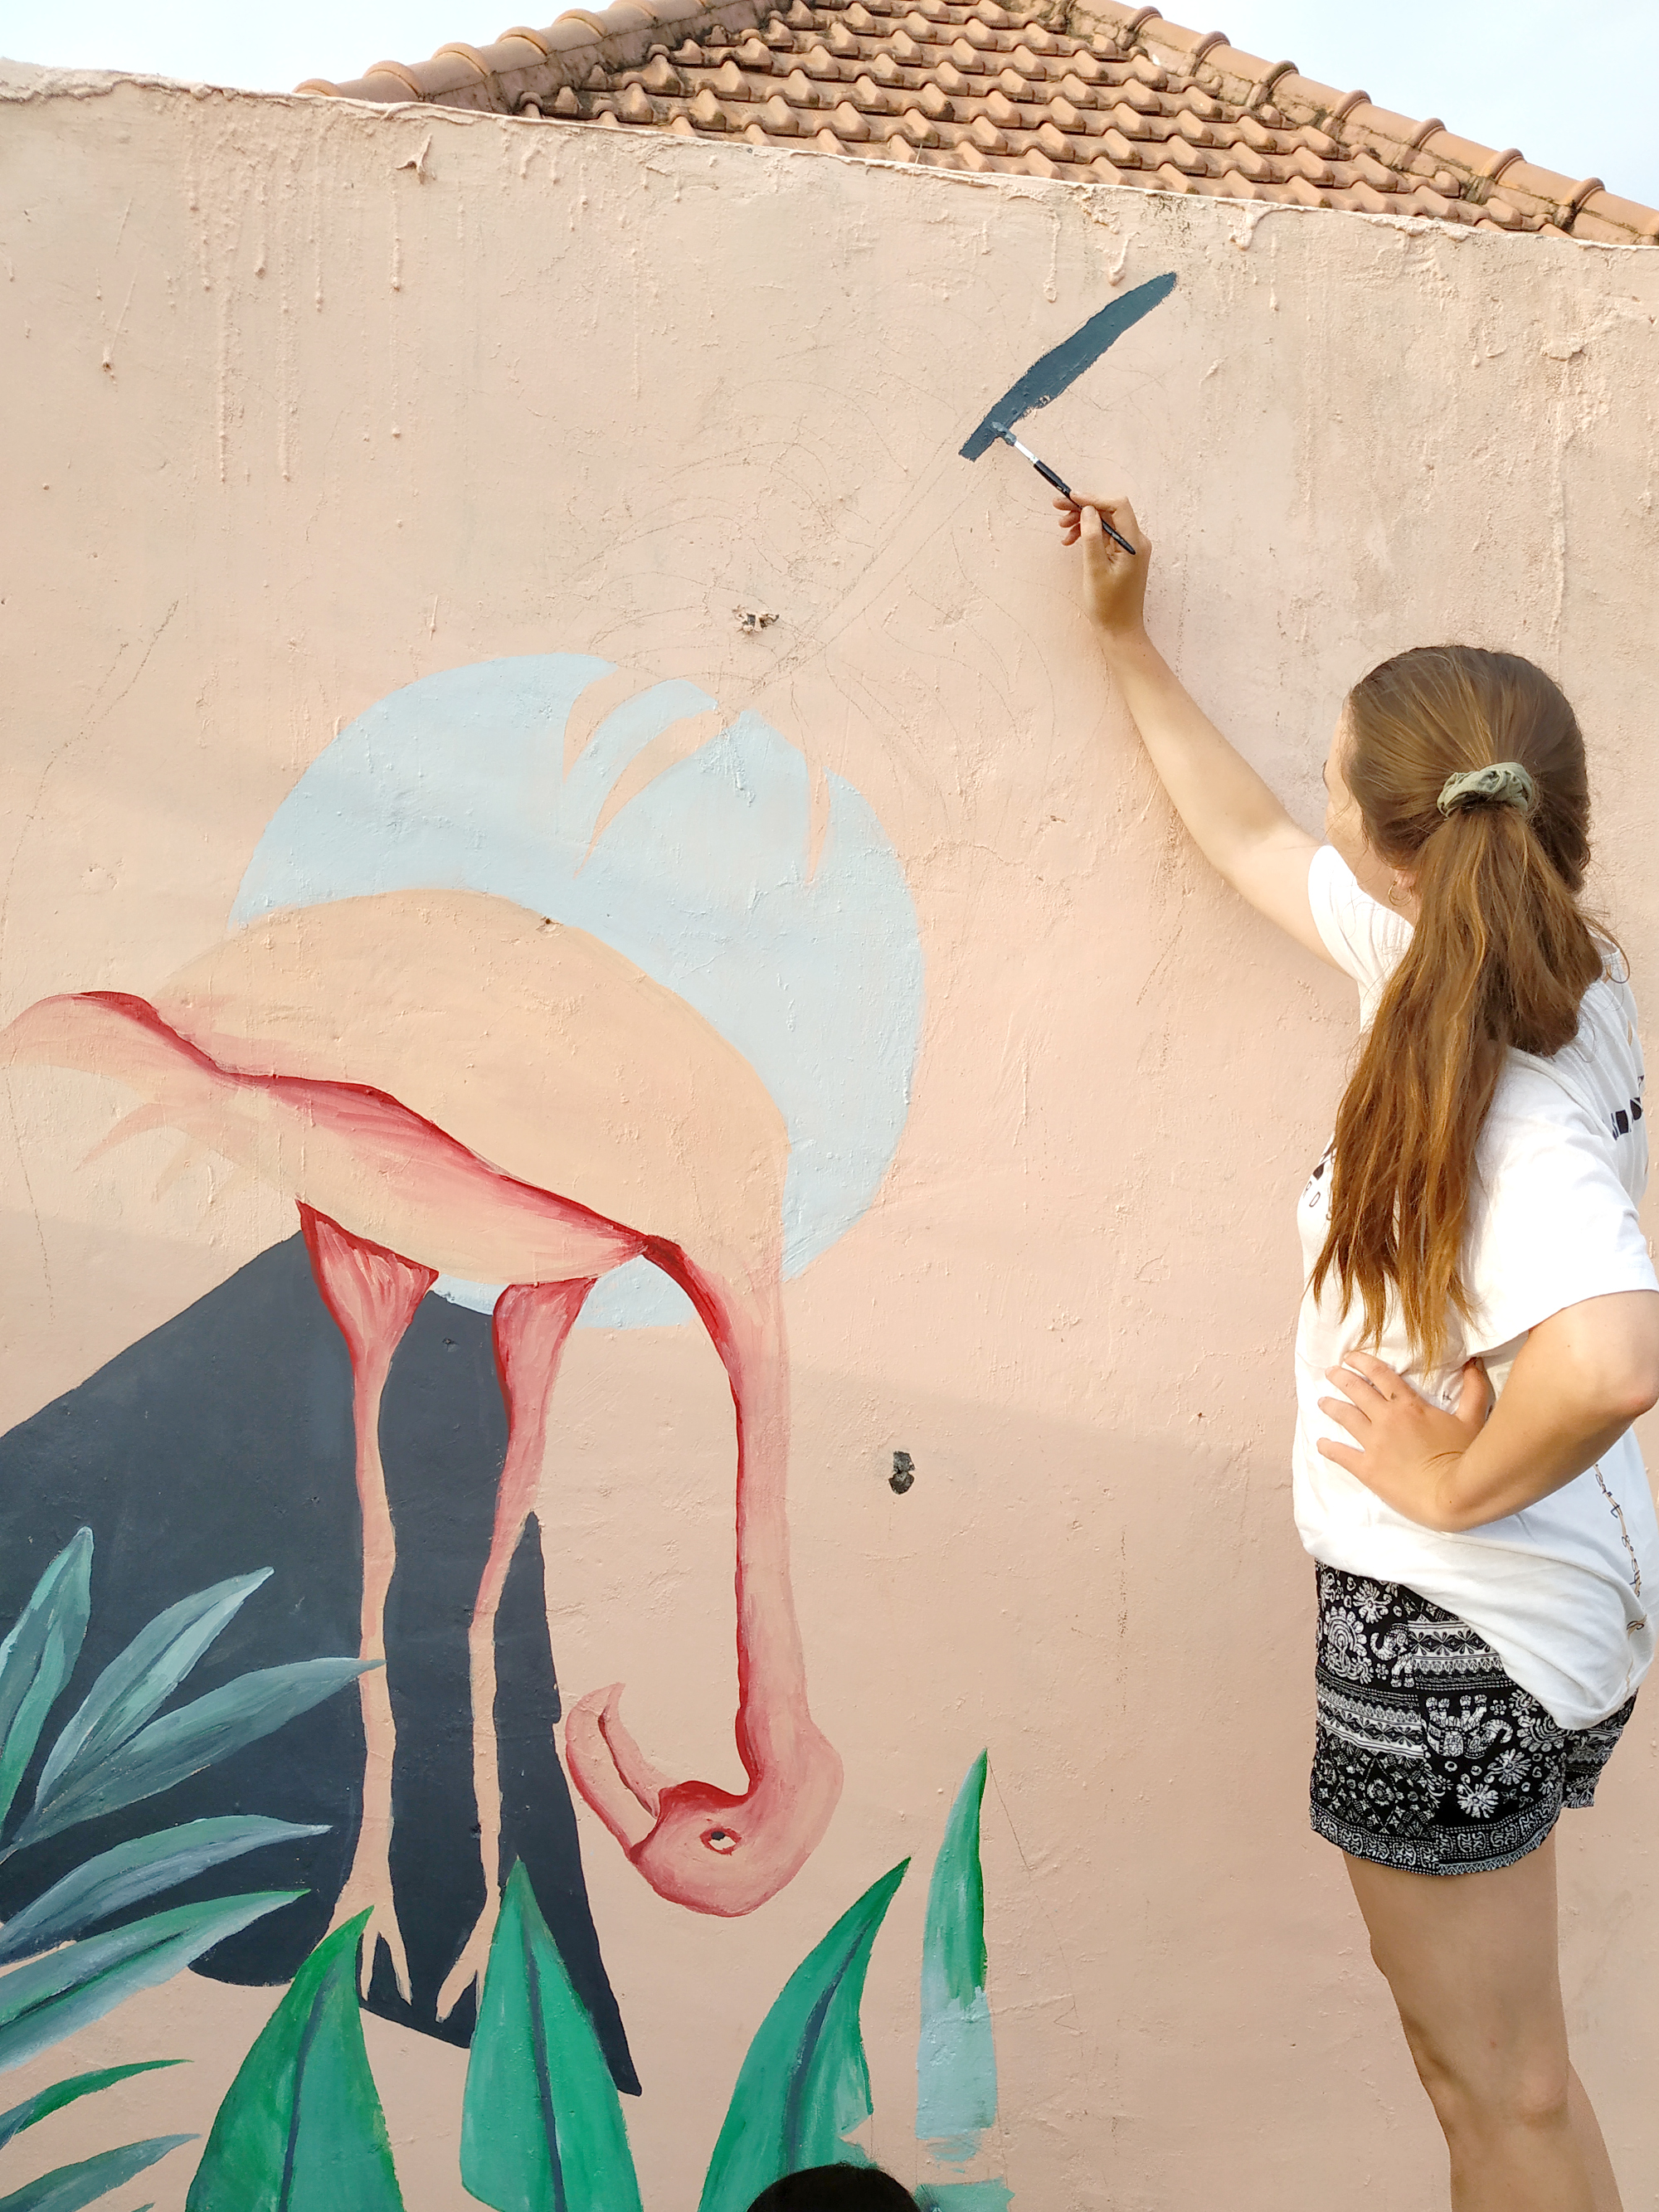 Progressing with mural